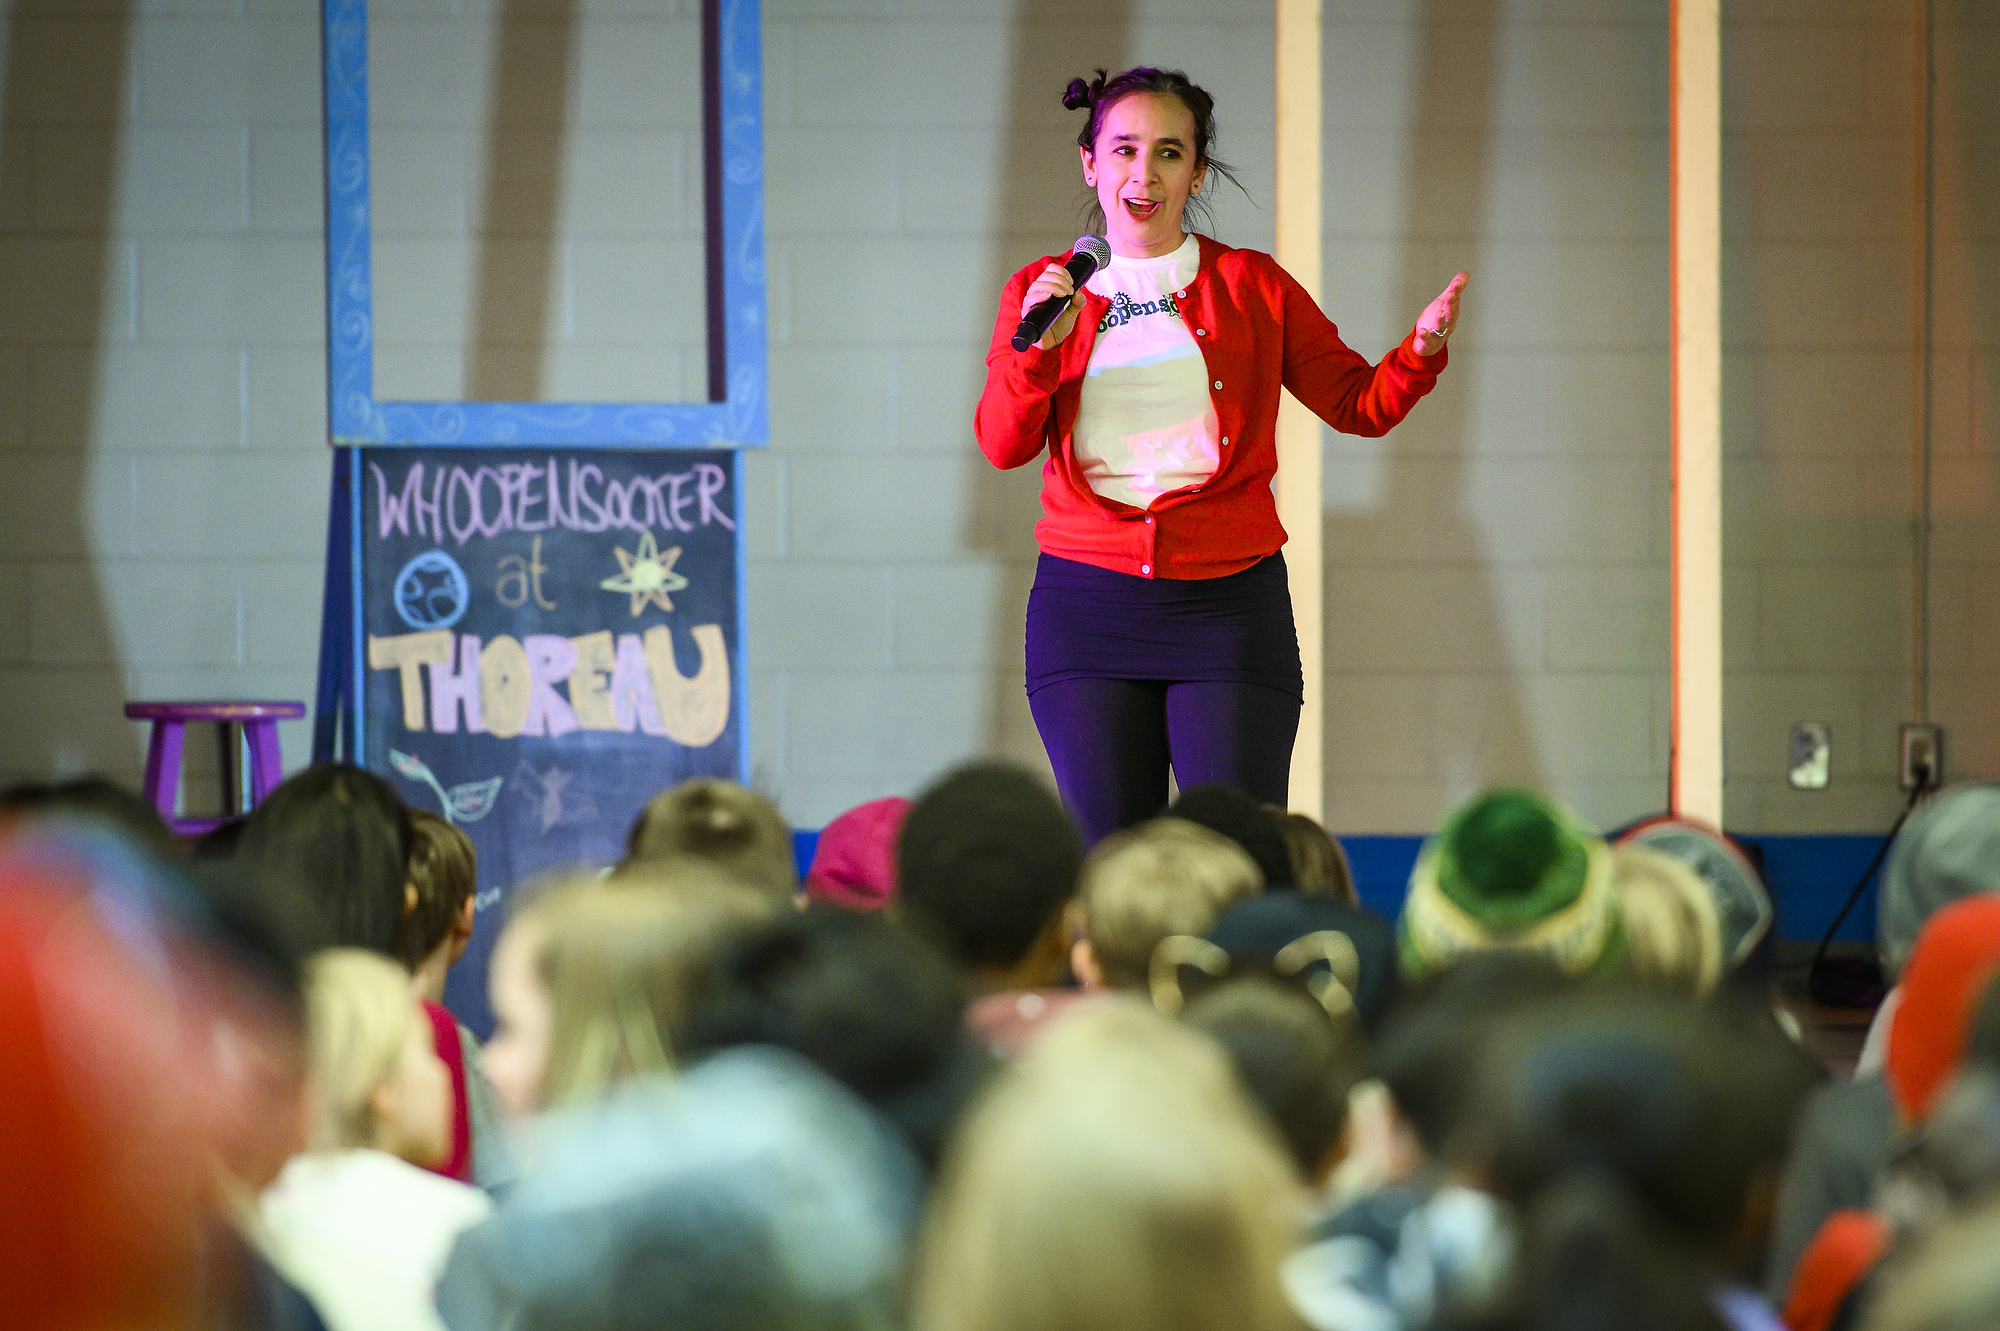 Erica Halverson speaking into a handheld microphone in front of a crowd of children